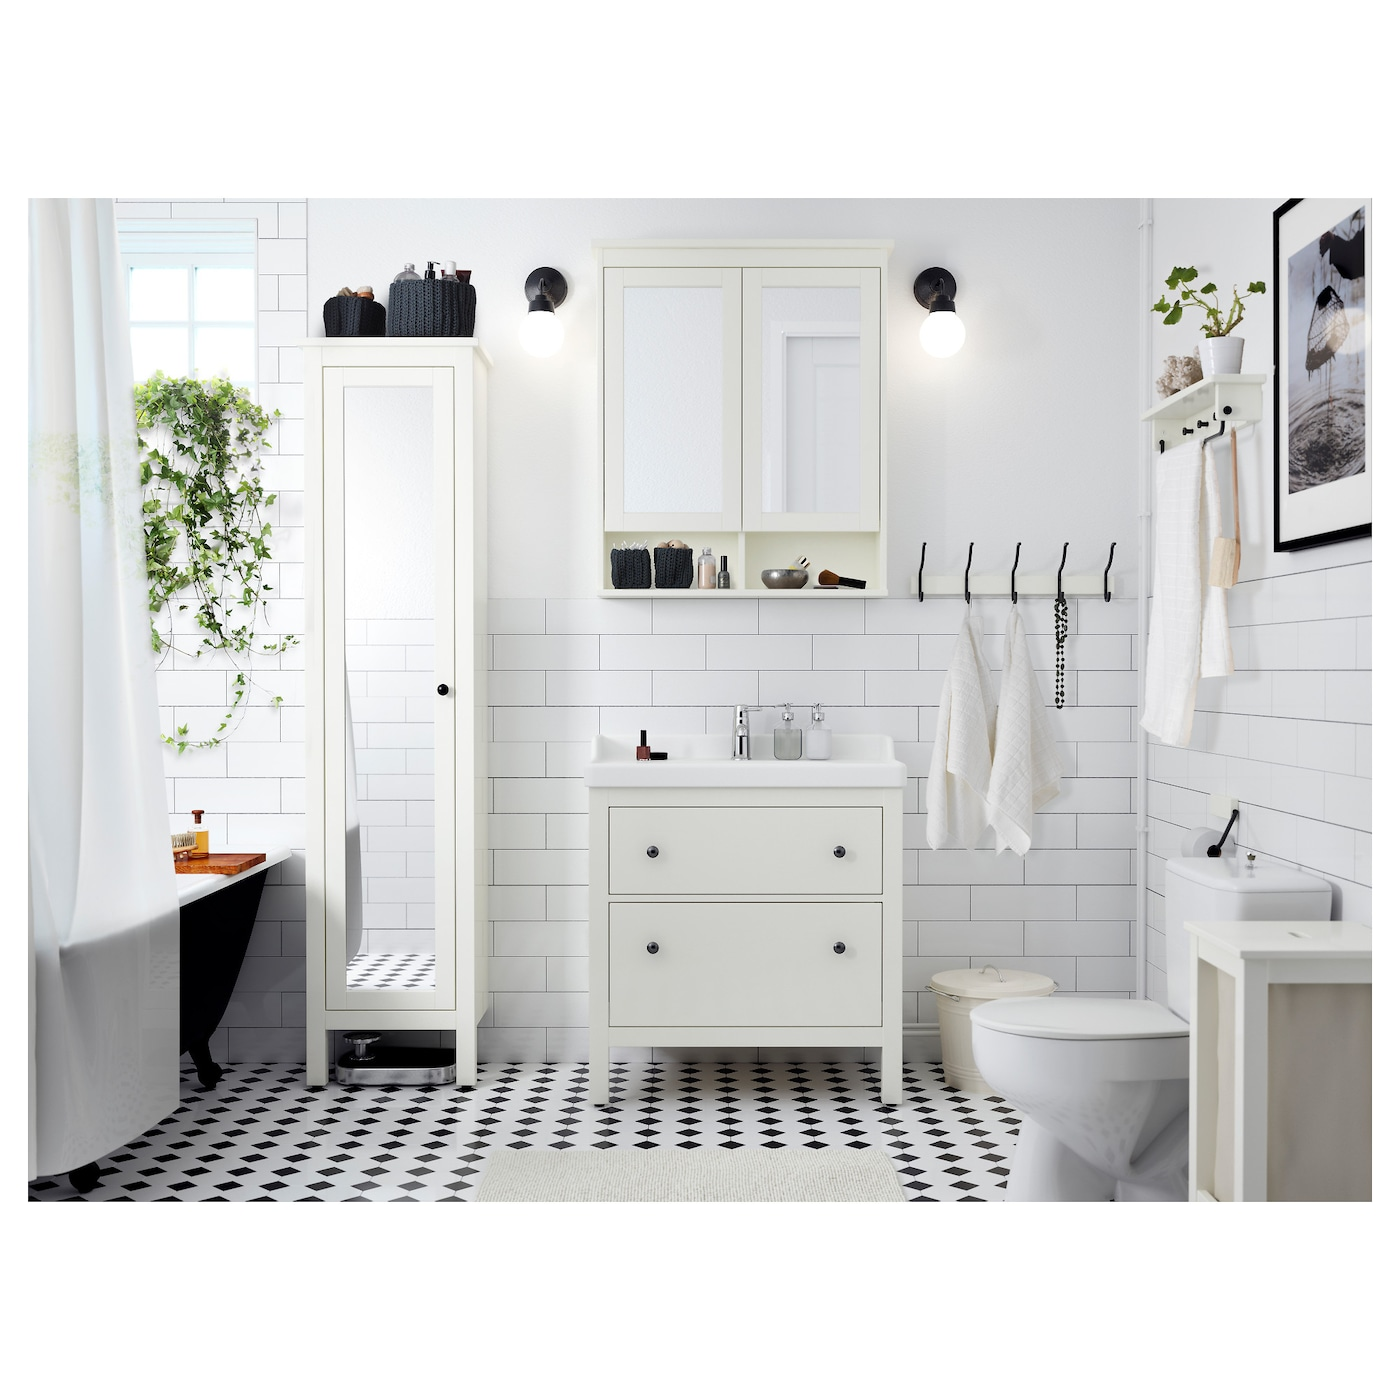 Hemnes High Cabinet With Mirror Door White 19 1 4x12 1 4x78 3 4 Ikea,Crooked Forest Poland Images